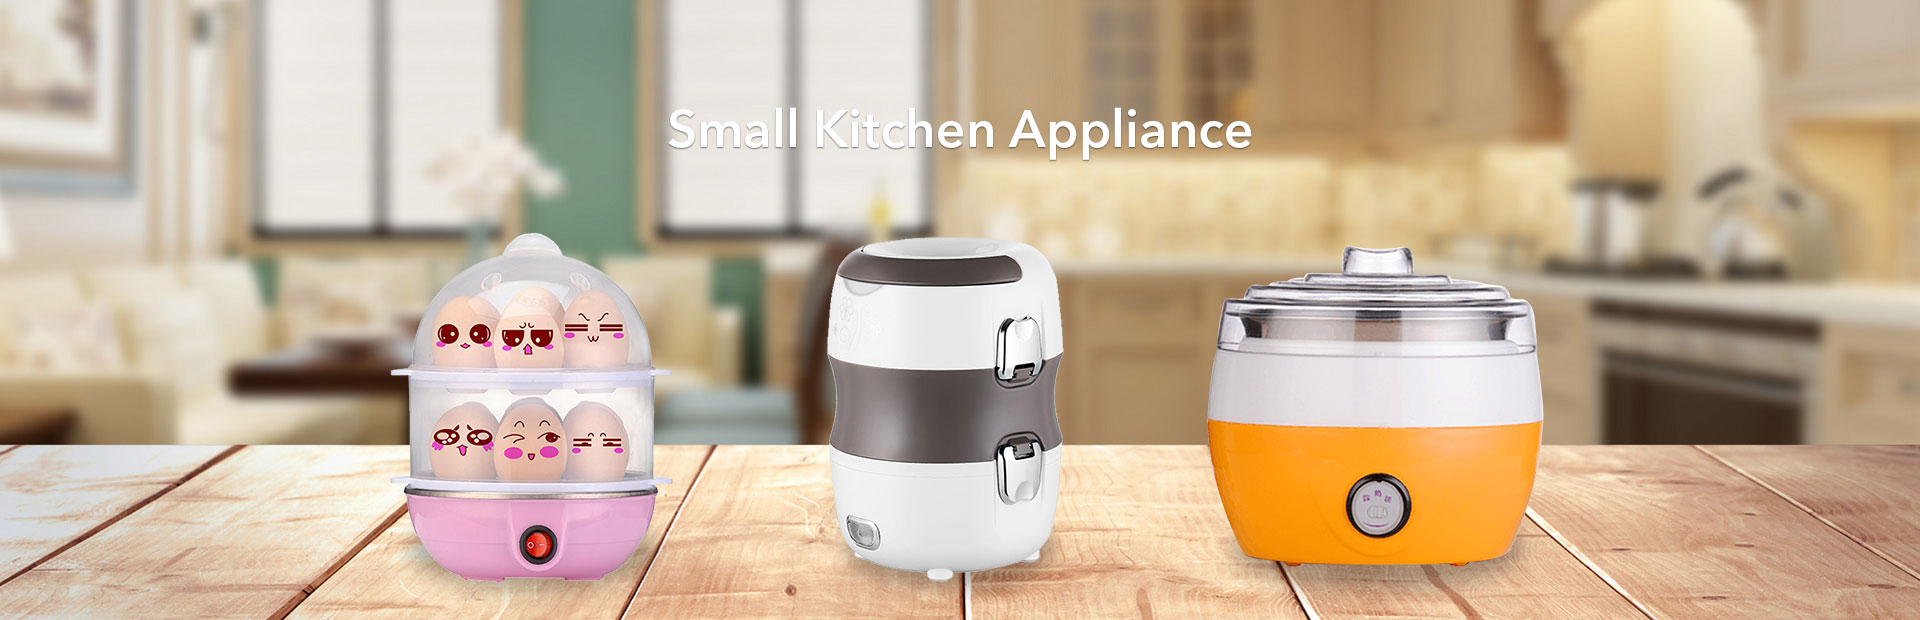 Small Kitchen Appliance